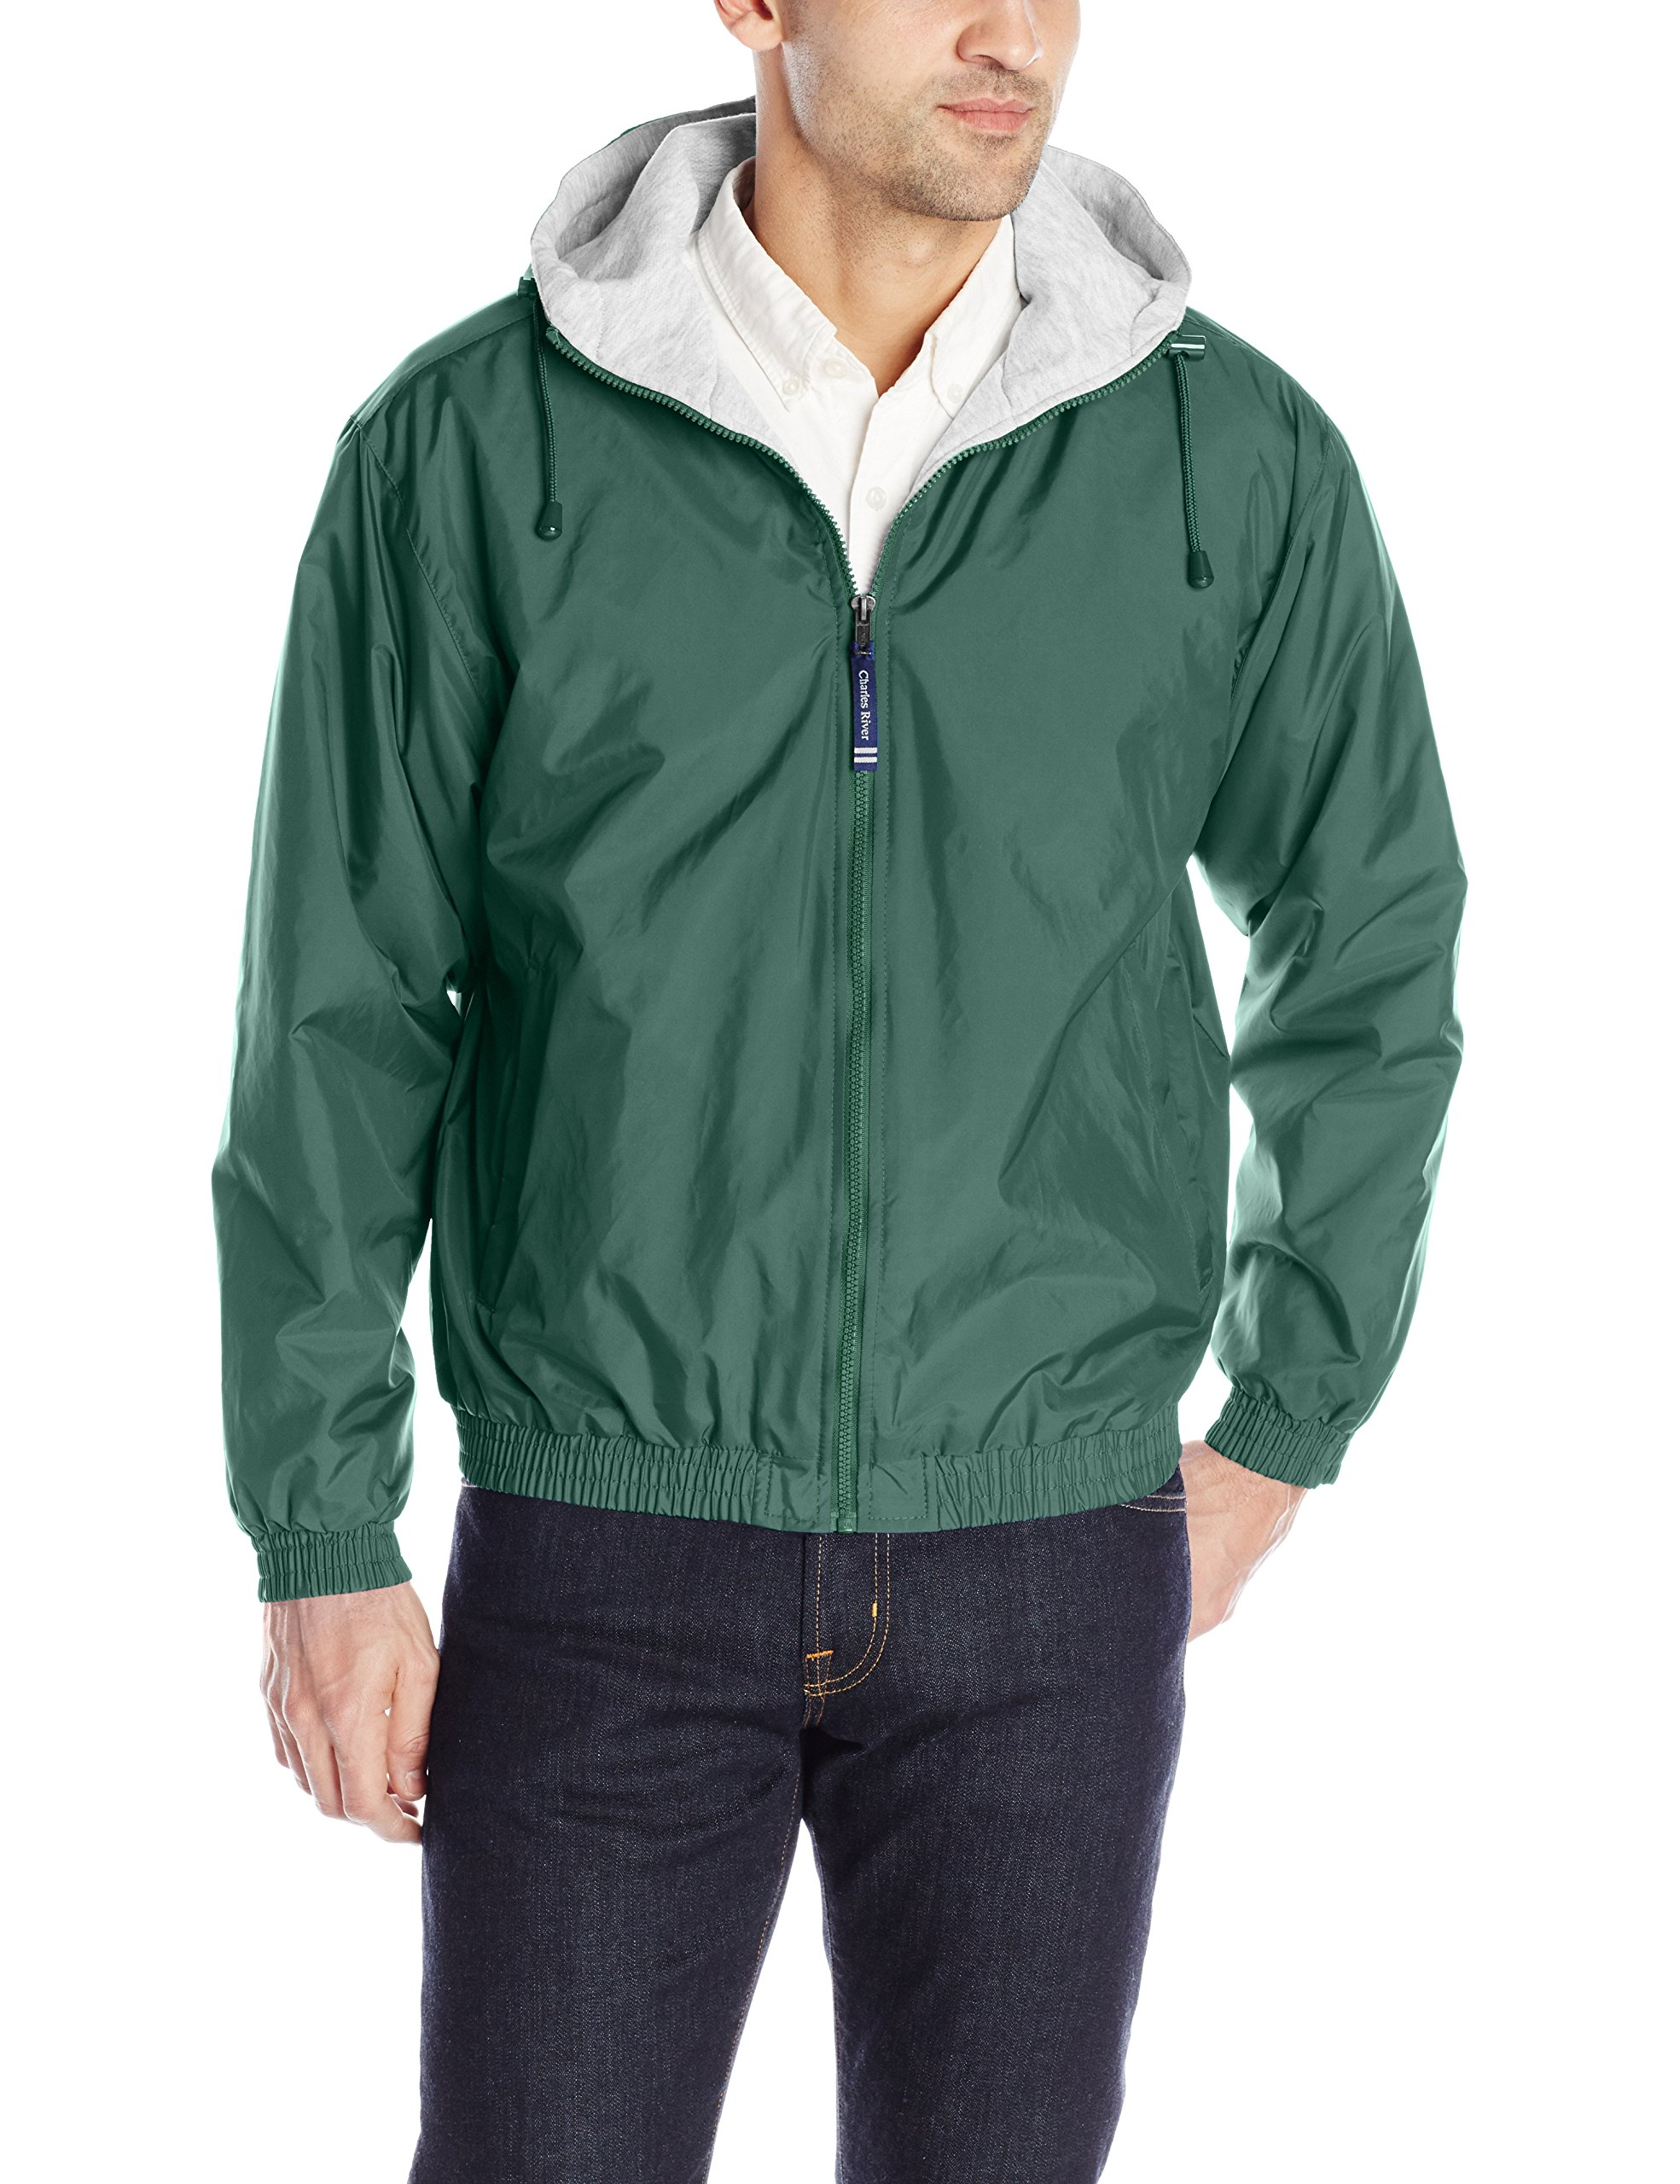 The ''Performer Collection'' Performer Nylon Jacket from Charles River Apparel,Forest green,Adult X-Large by Charles River Apparel